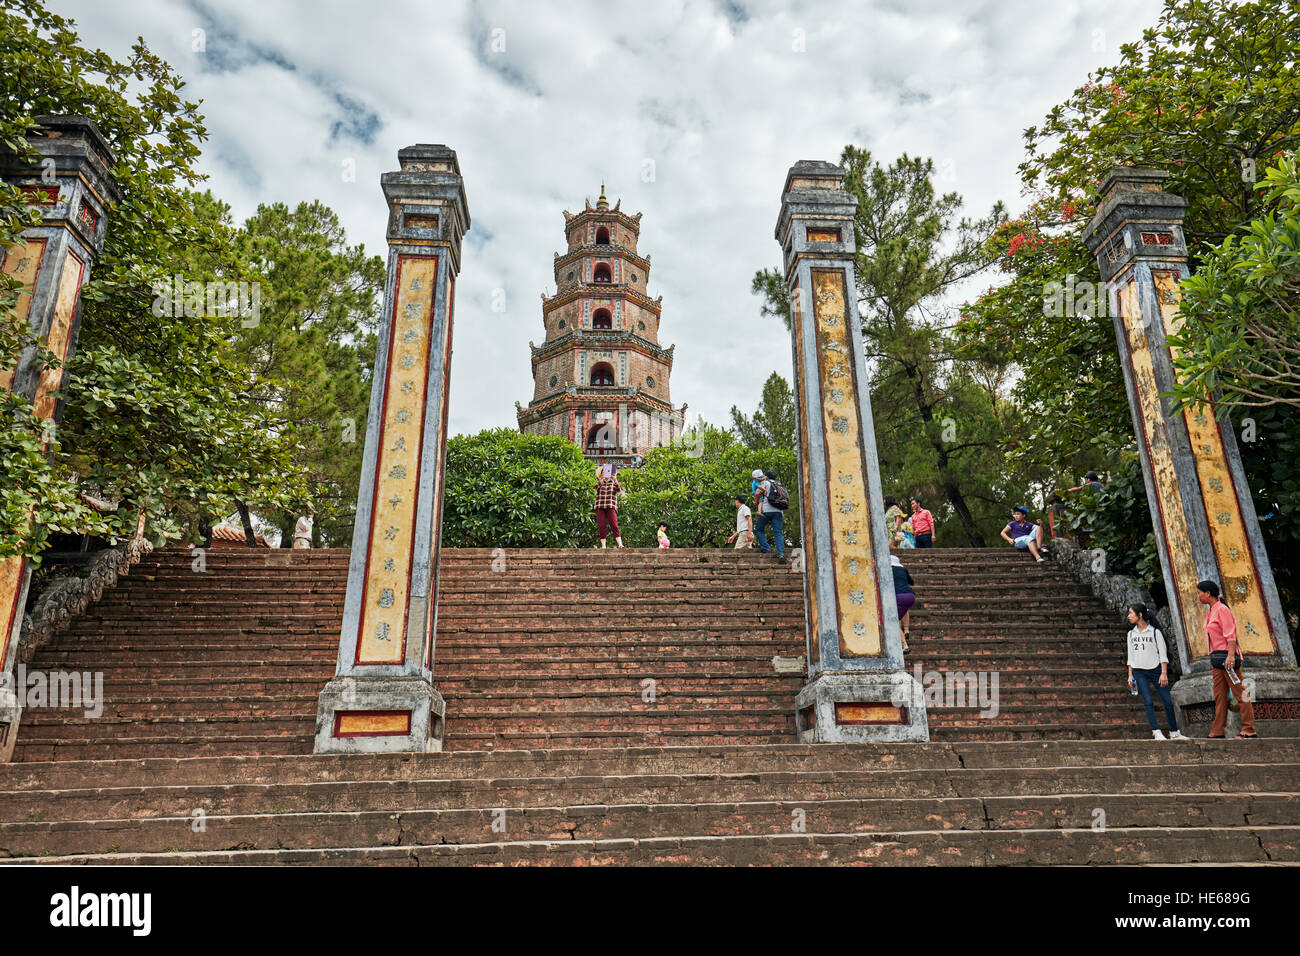 The pillars of the front entrance of the Thien Mu Pagoda. Hue, Vietnam. - Stock Image